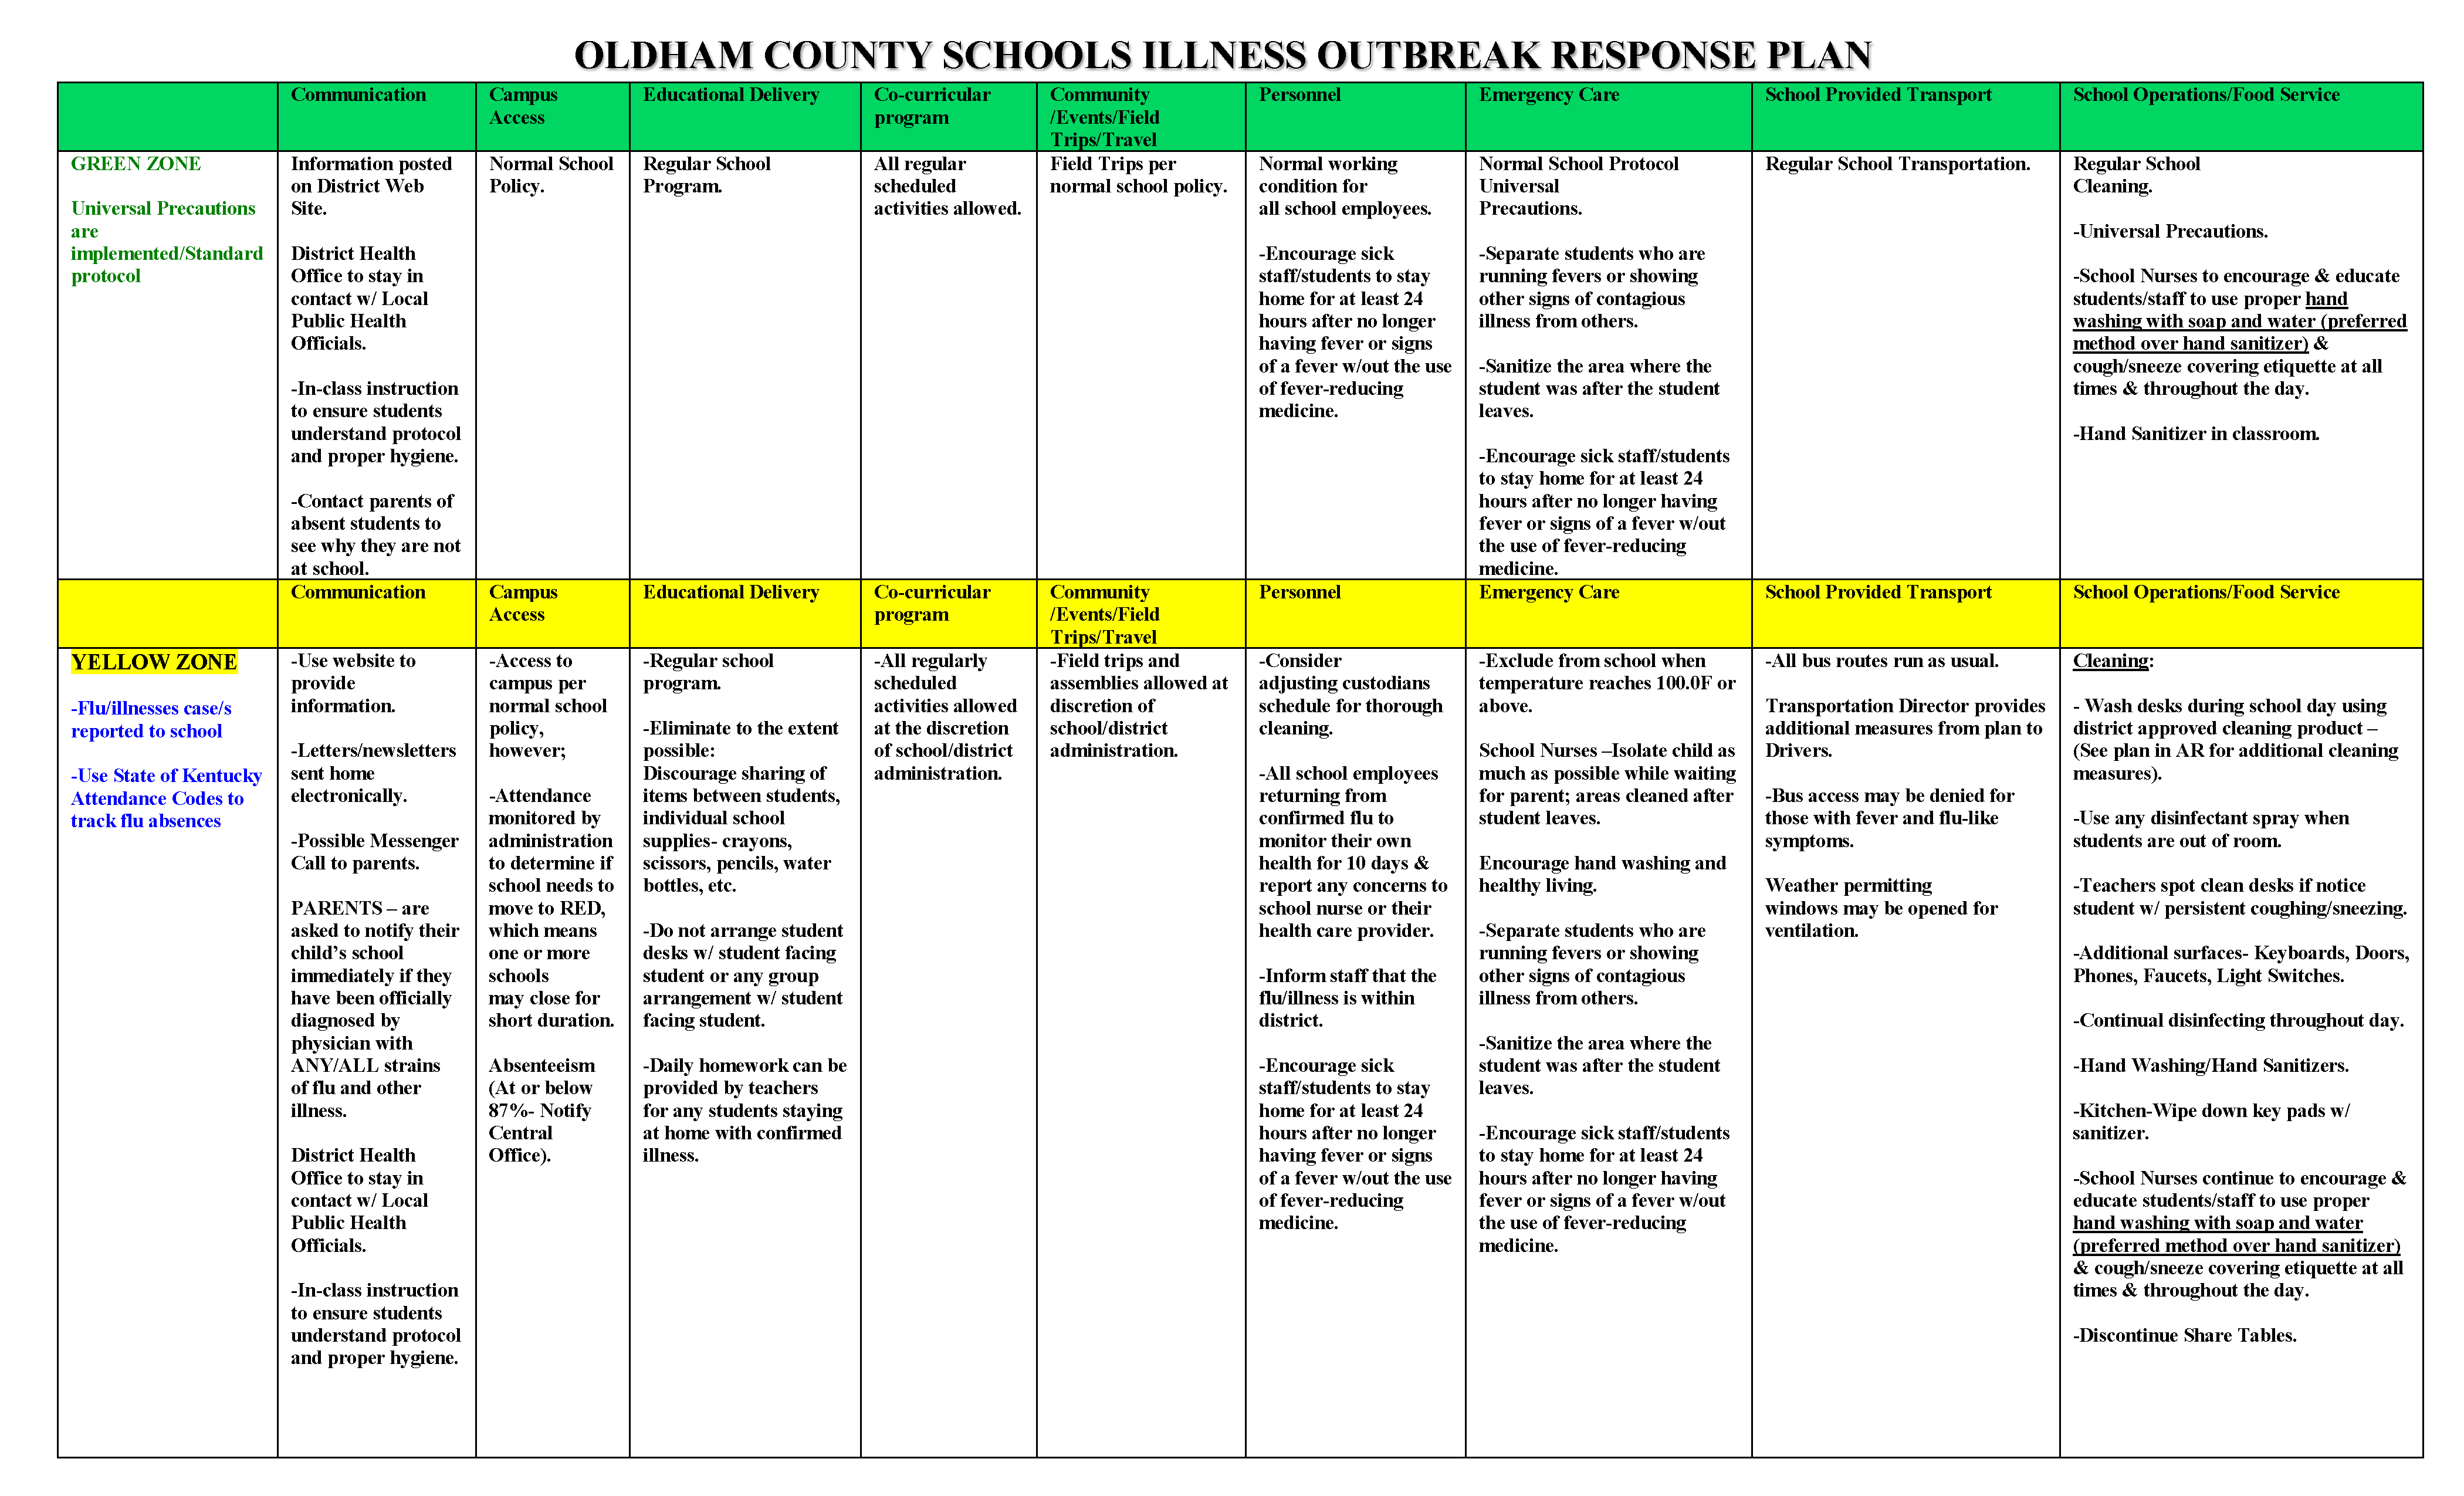 Oldham County Schools Illness Outbreak Response Plan - Green & Yellow